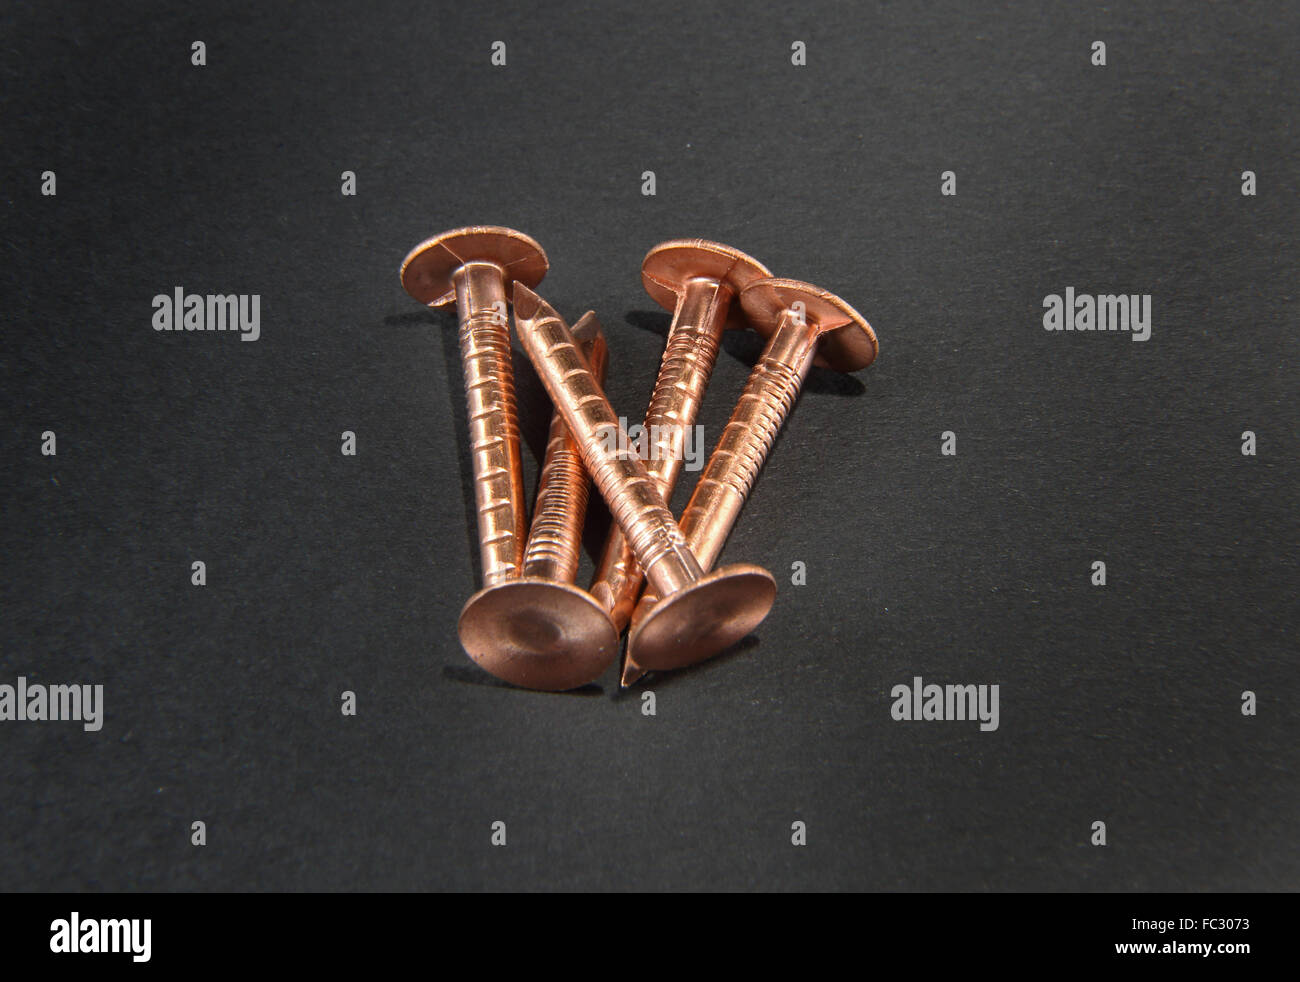 Stock Photo   Studio Close Up Shot Of Five Copper Roofing Nails Against A  Black Background